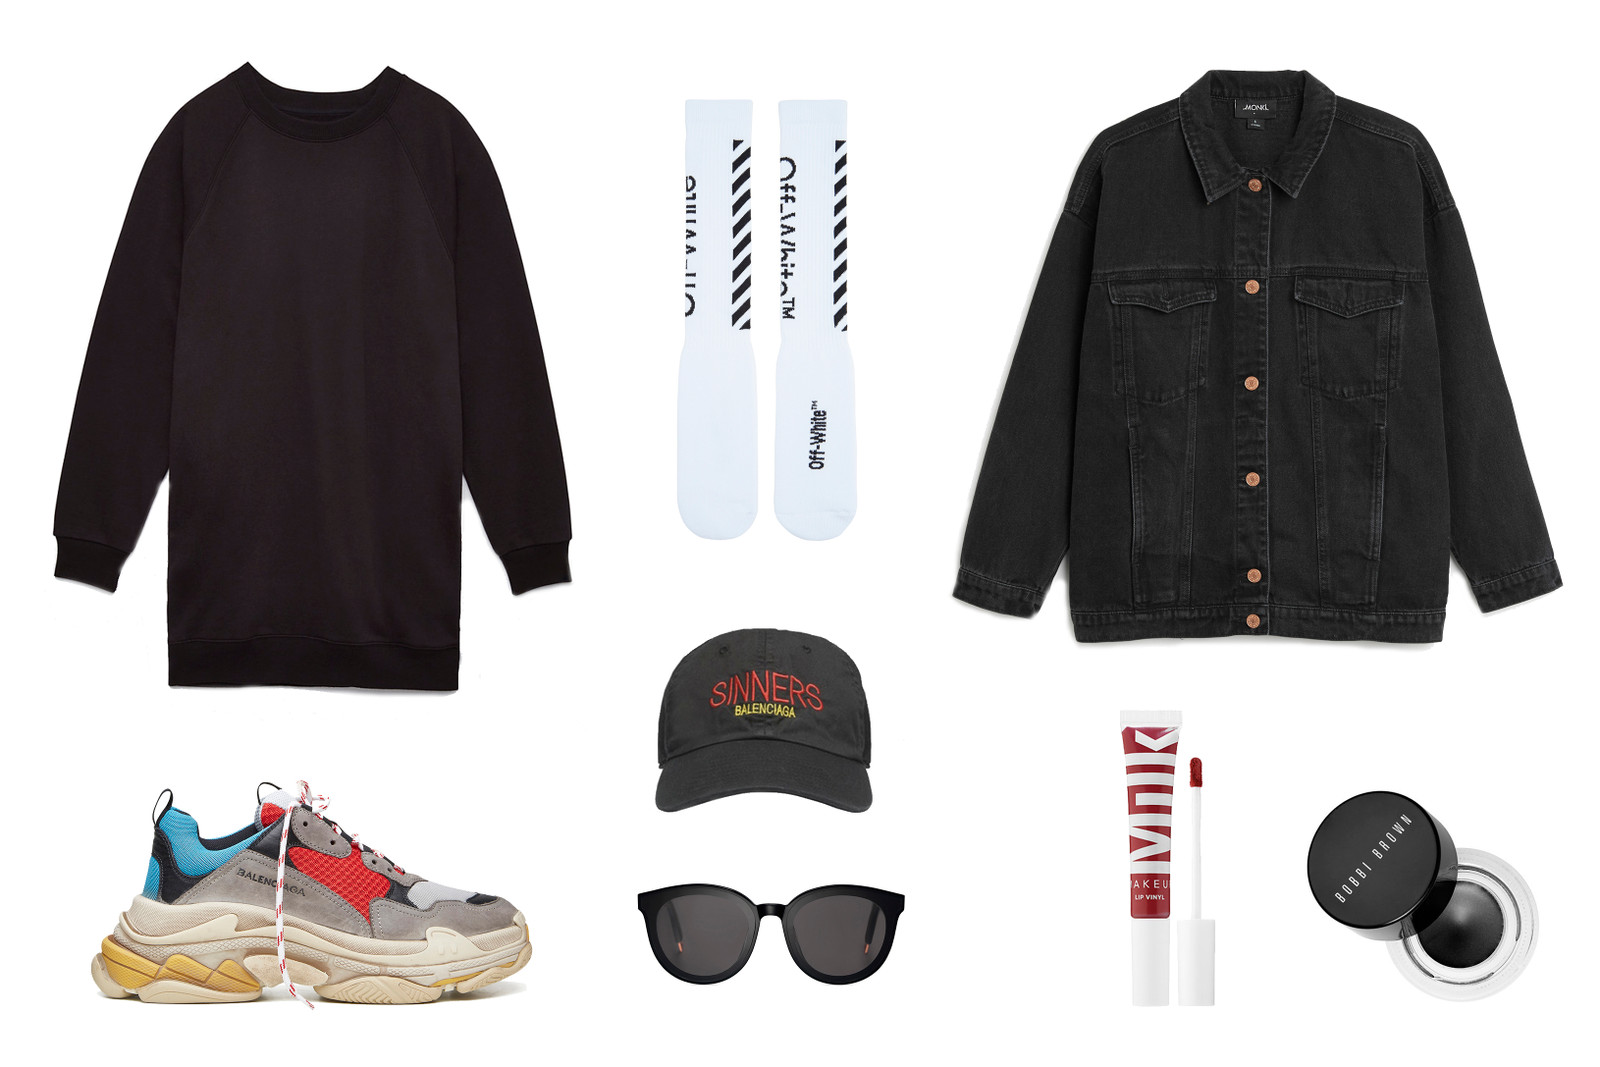 Balenciaga Triple-S Sneaker Runner Shoe Outfit Ideas Silhouette Popular Hype Fashion Inspiration